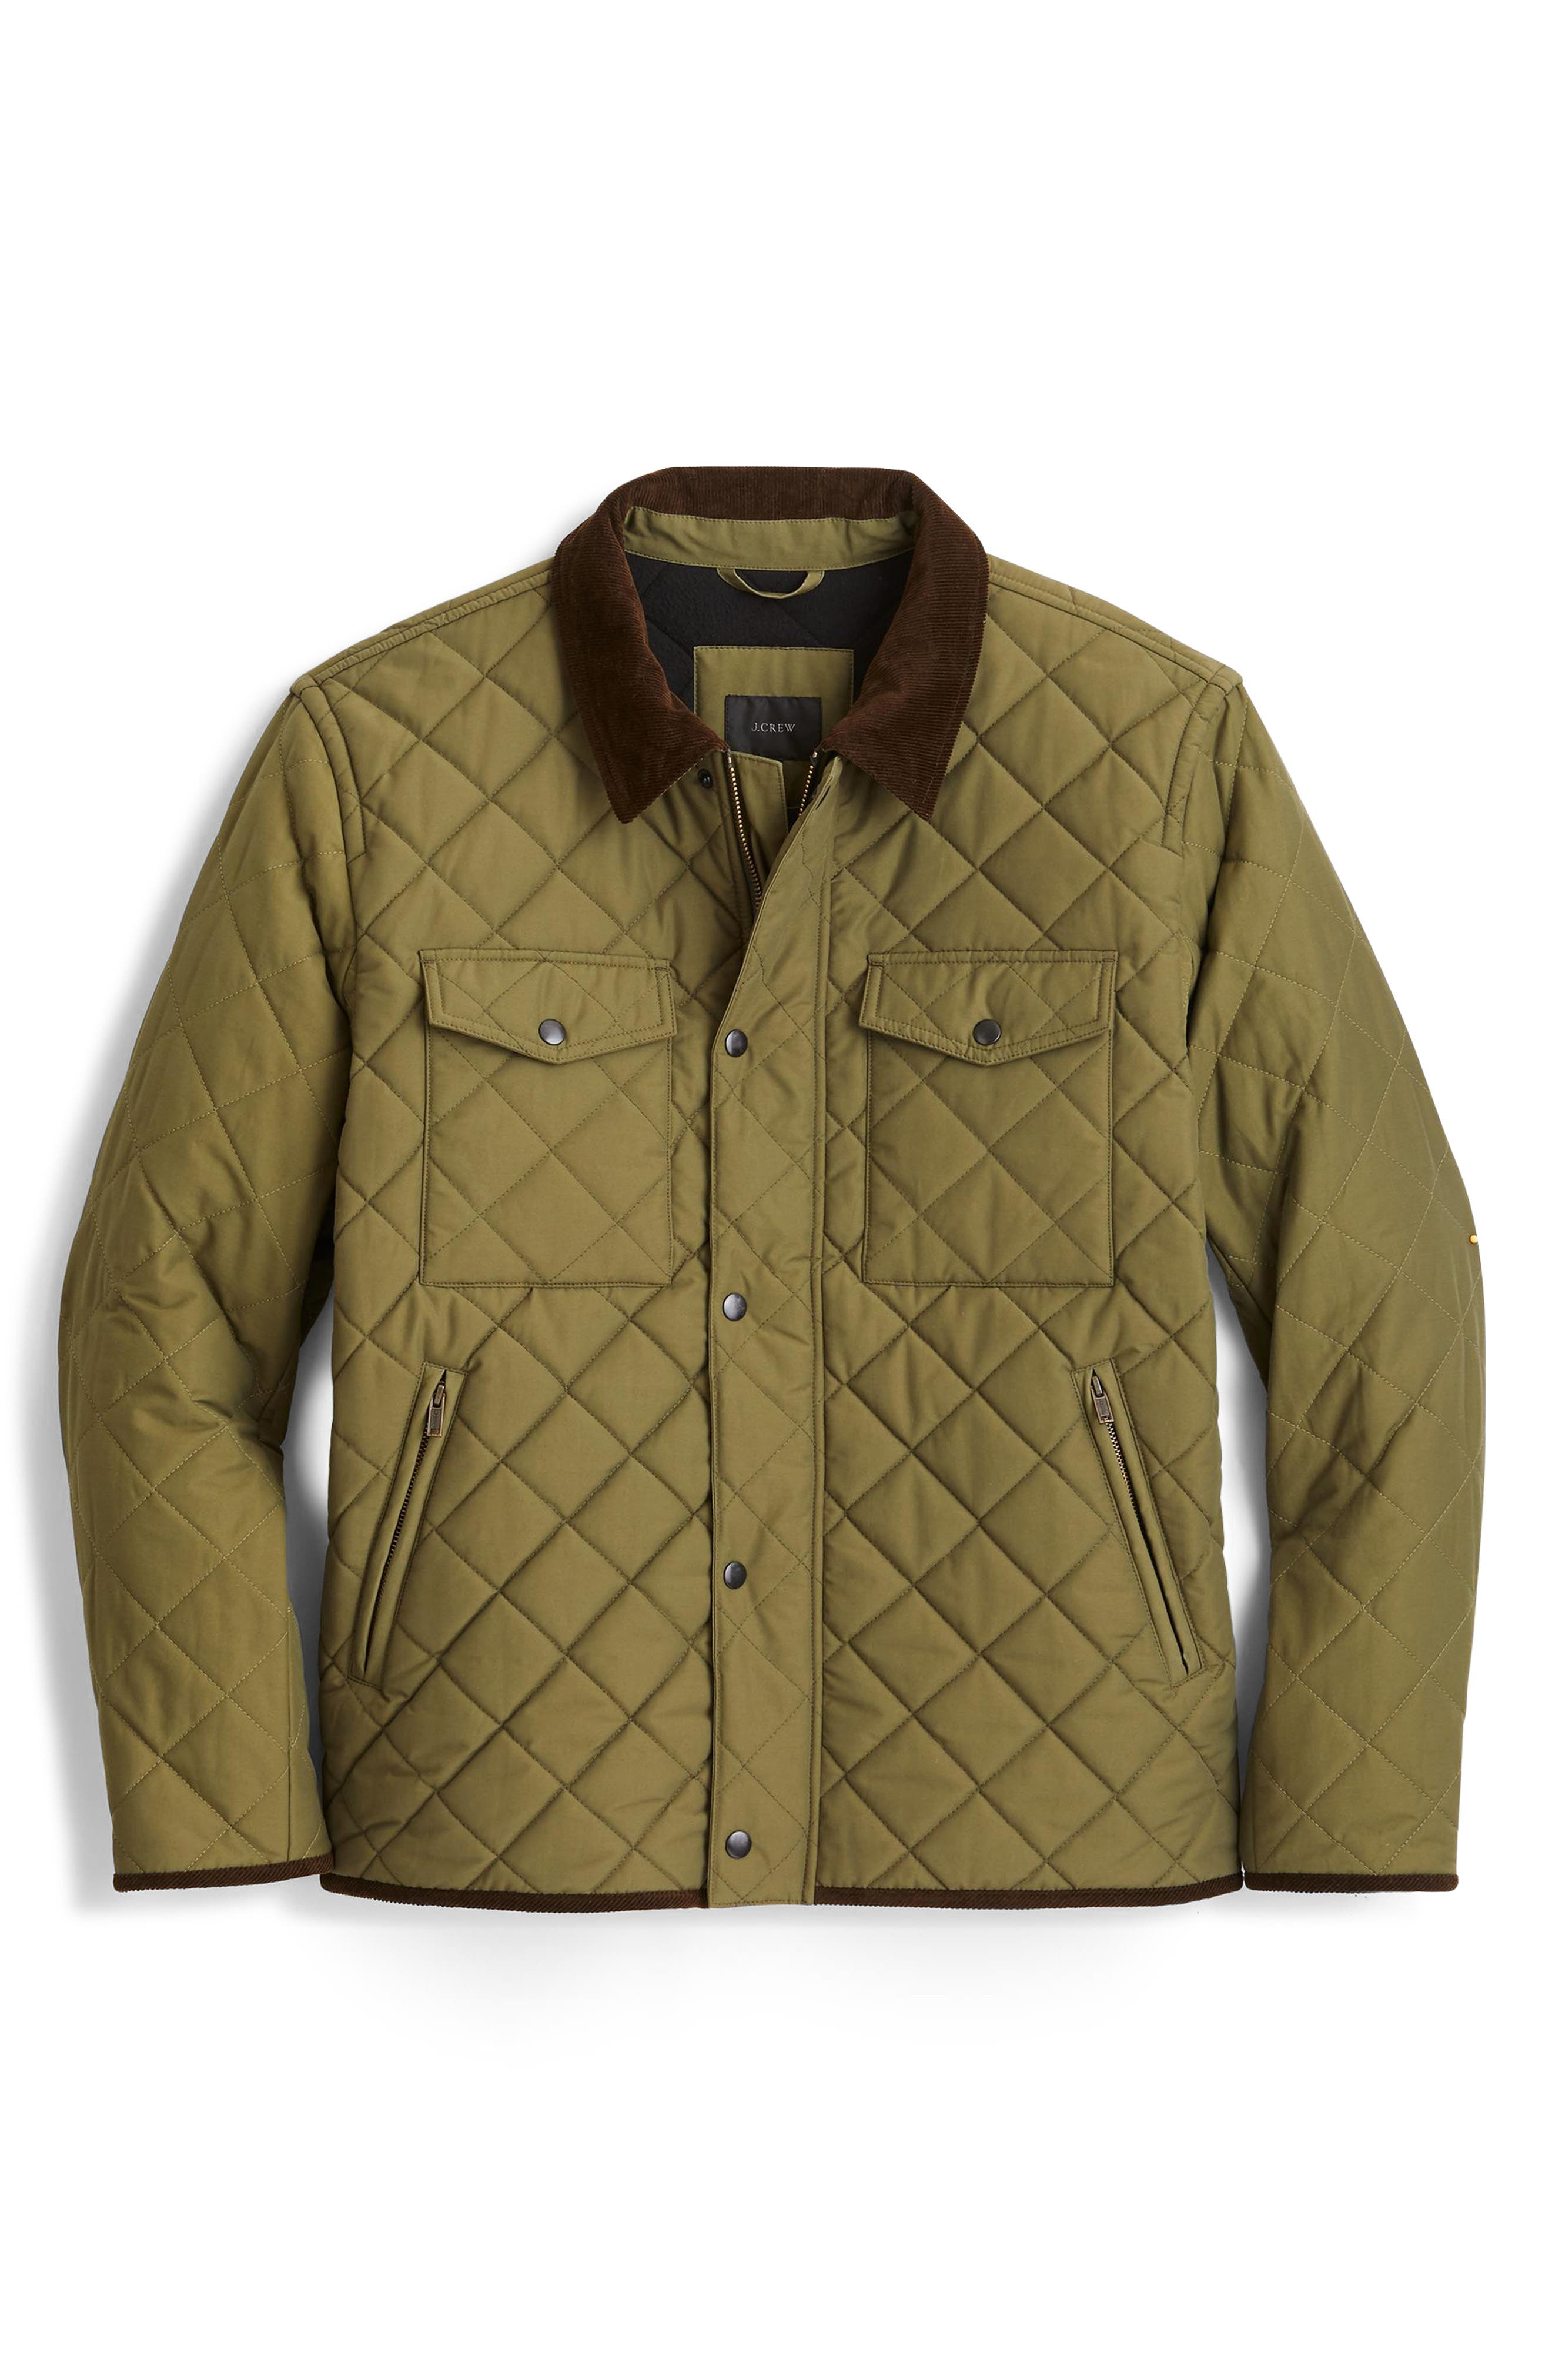 Sussex Quilted Jacket with Corduroy Collar,                             Alternate thumbnail 3, color,                             300